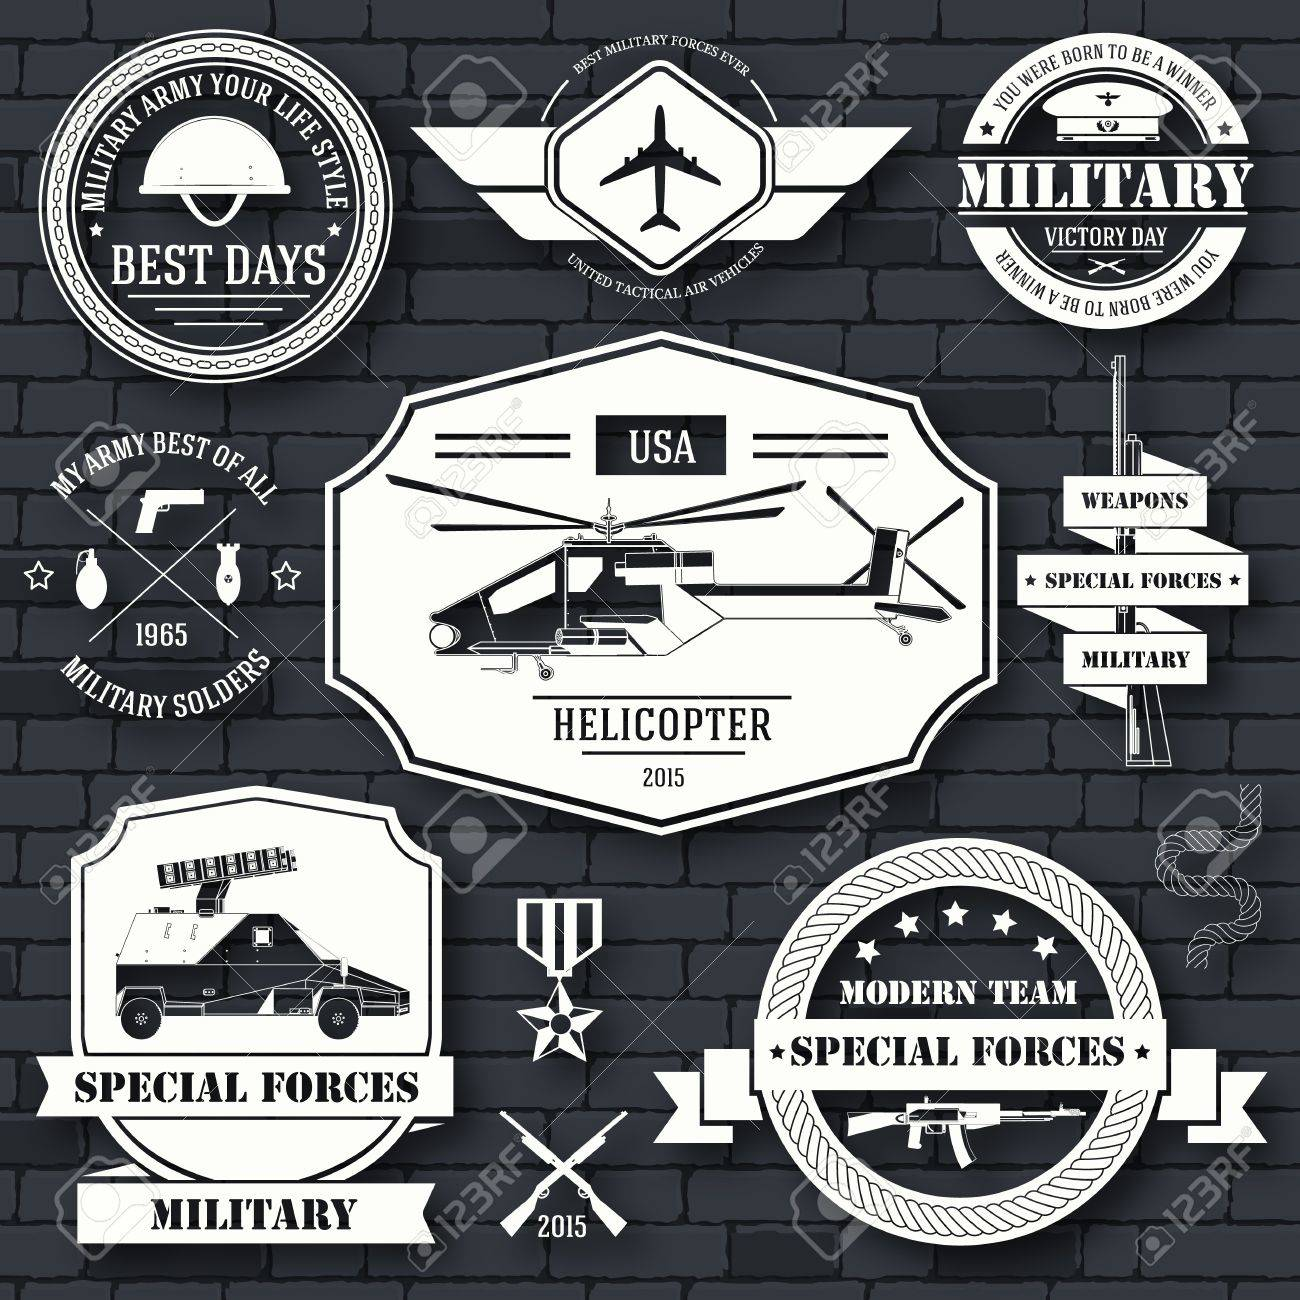 military set label template of emblem element for your product or design, logo, element, web and mobile applications with text. Vector illustration with thin lines isolated icons on stamp symbol - 51592321